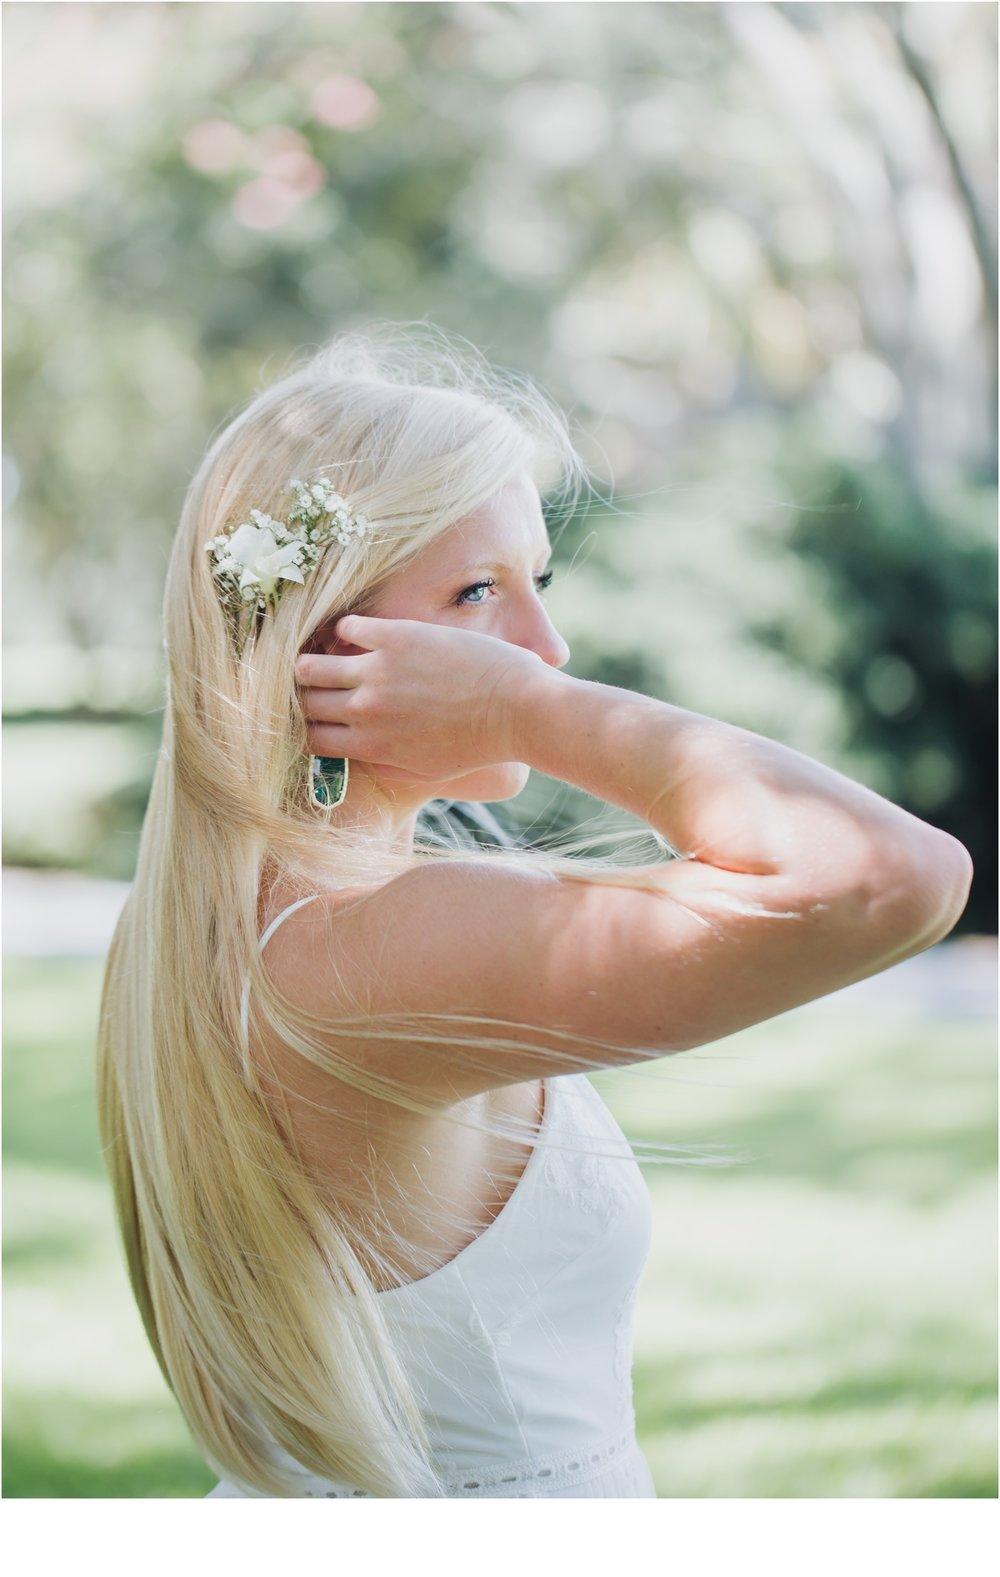 Rainey_Gregg_Photography_St._Simons_Island_Georgia_California_Wedding_Portrait_Photography_1118.jpg